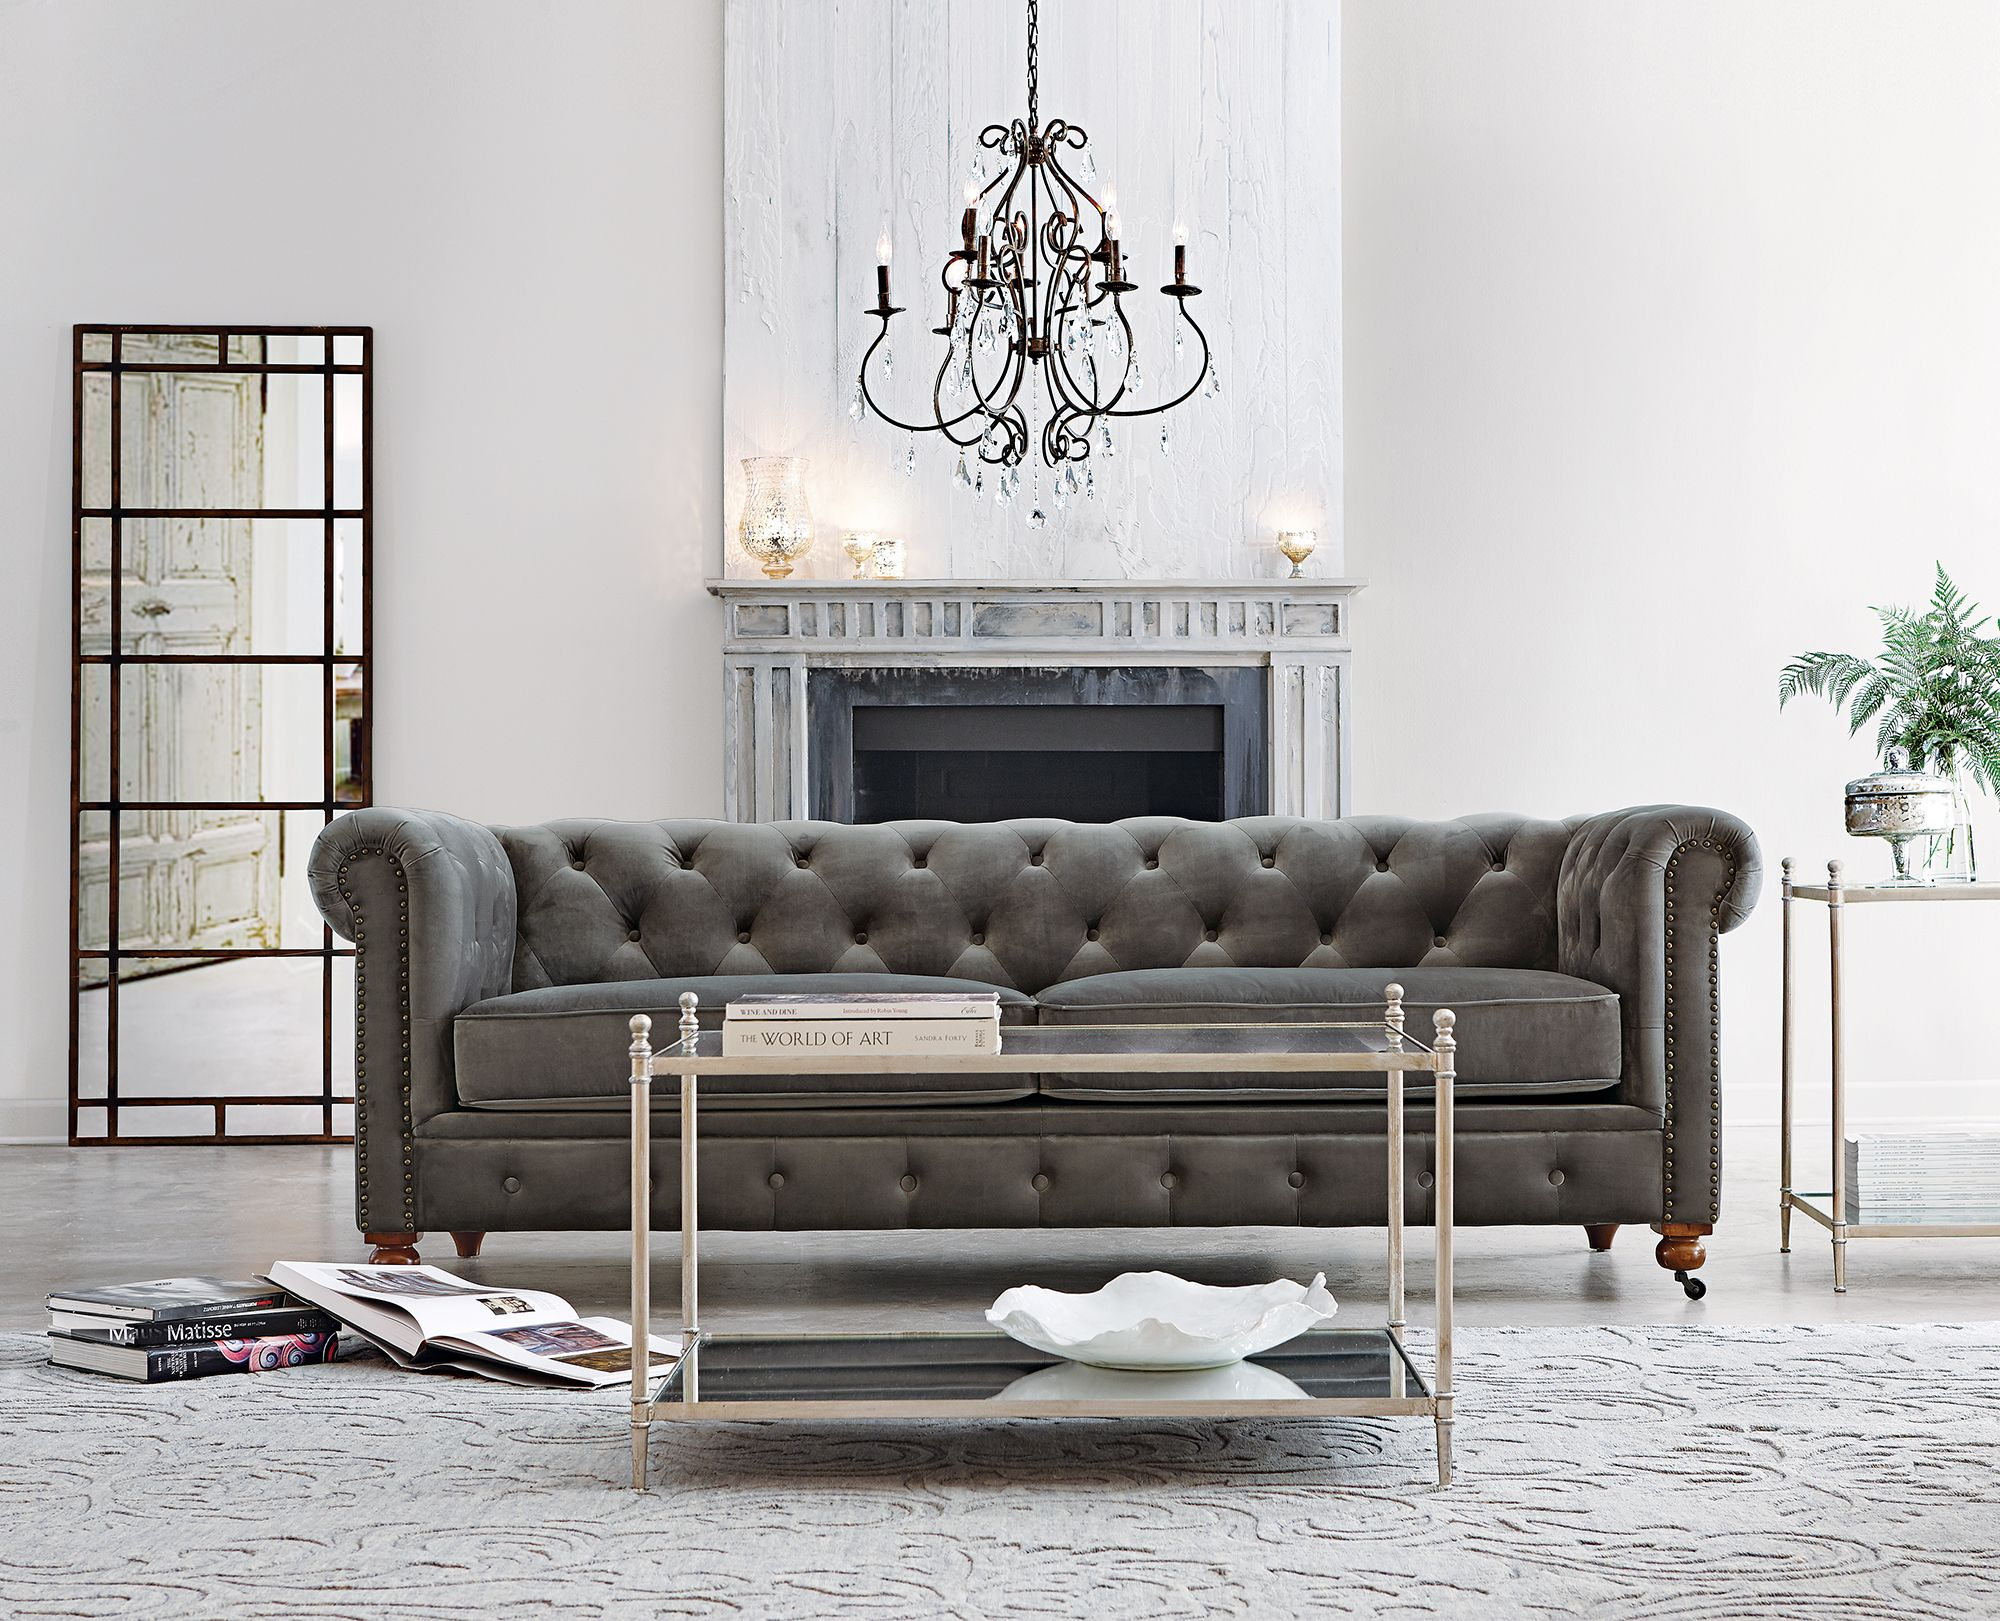 Home Decorators Tufted Sofa Family Photo Collection Gordon Brown Leather Living Room Our Favorite Now Comes In Grey Velvet Just Time For Fall Homedecorators Com